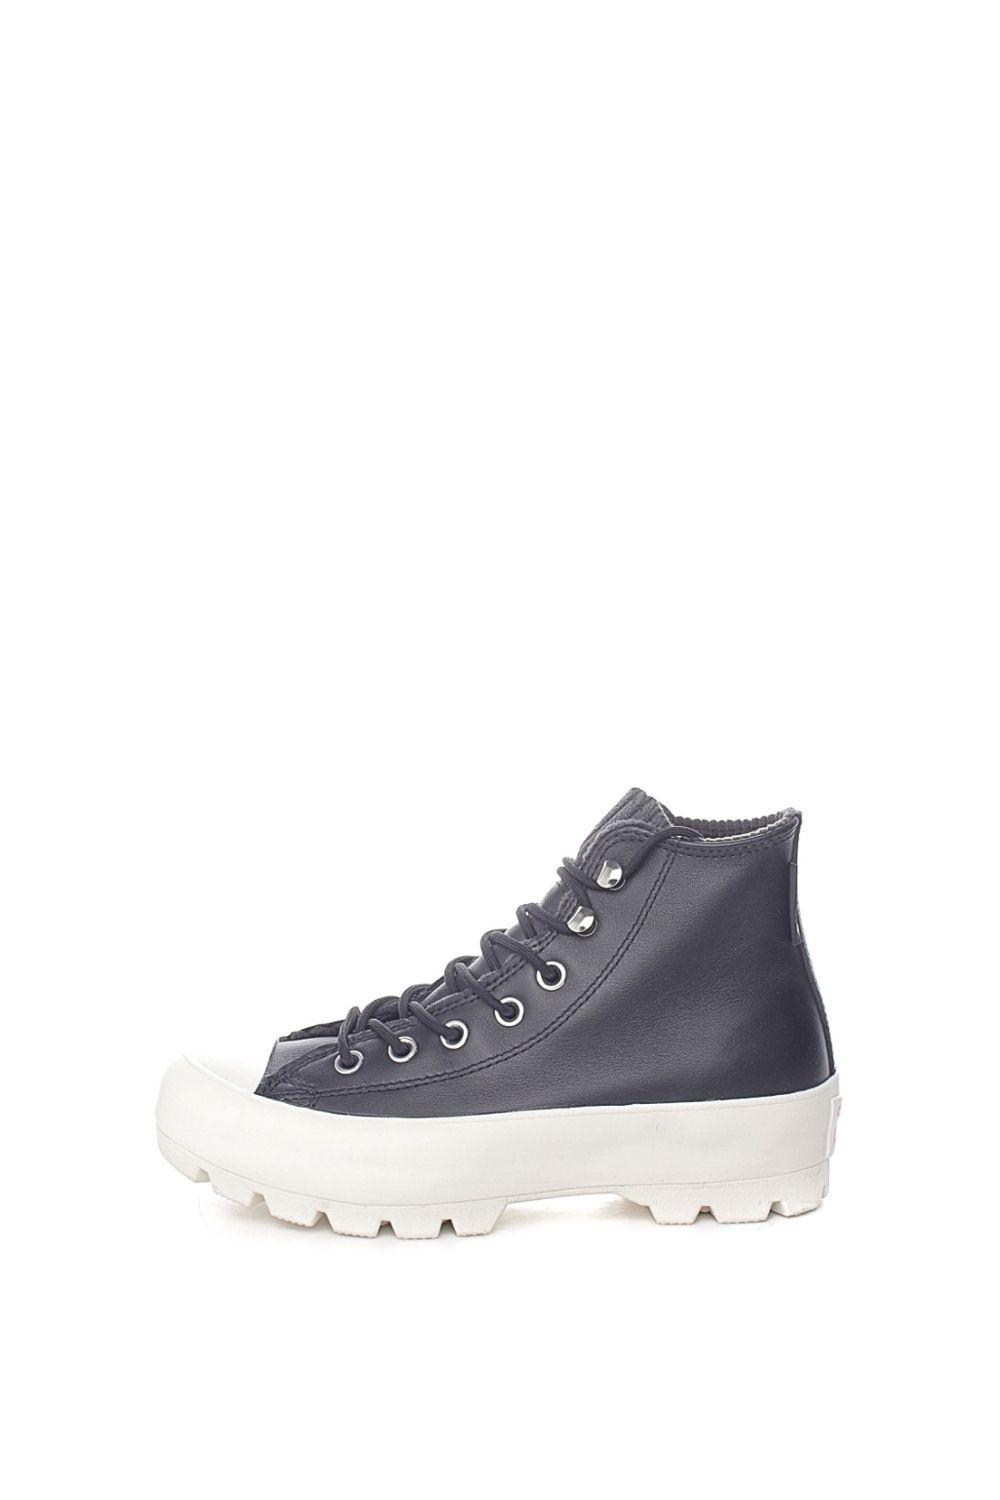 CONVERSE – Γυναικεία sneakers CONVERSE CHUCK TAYLOR ALL STAR LUGGED W μαύρα